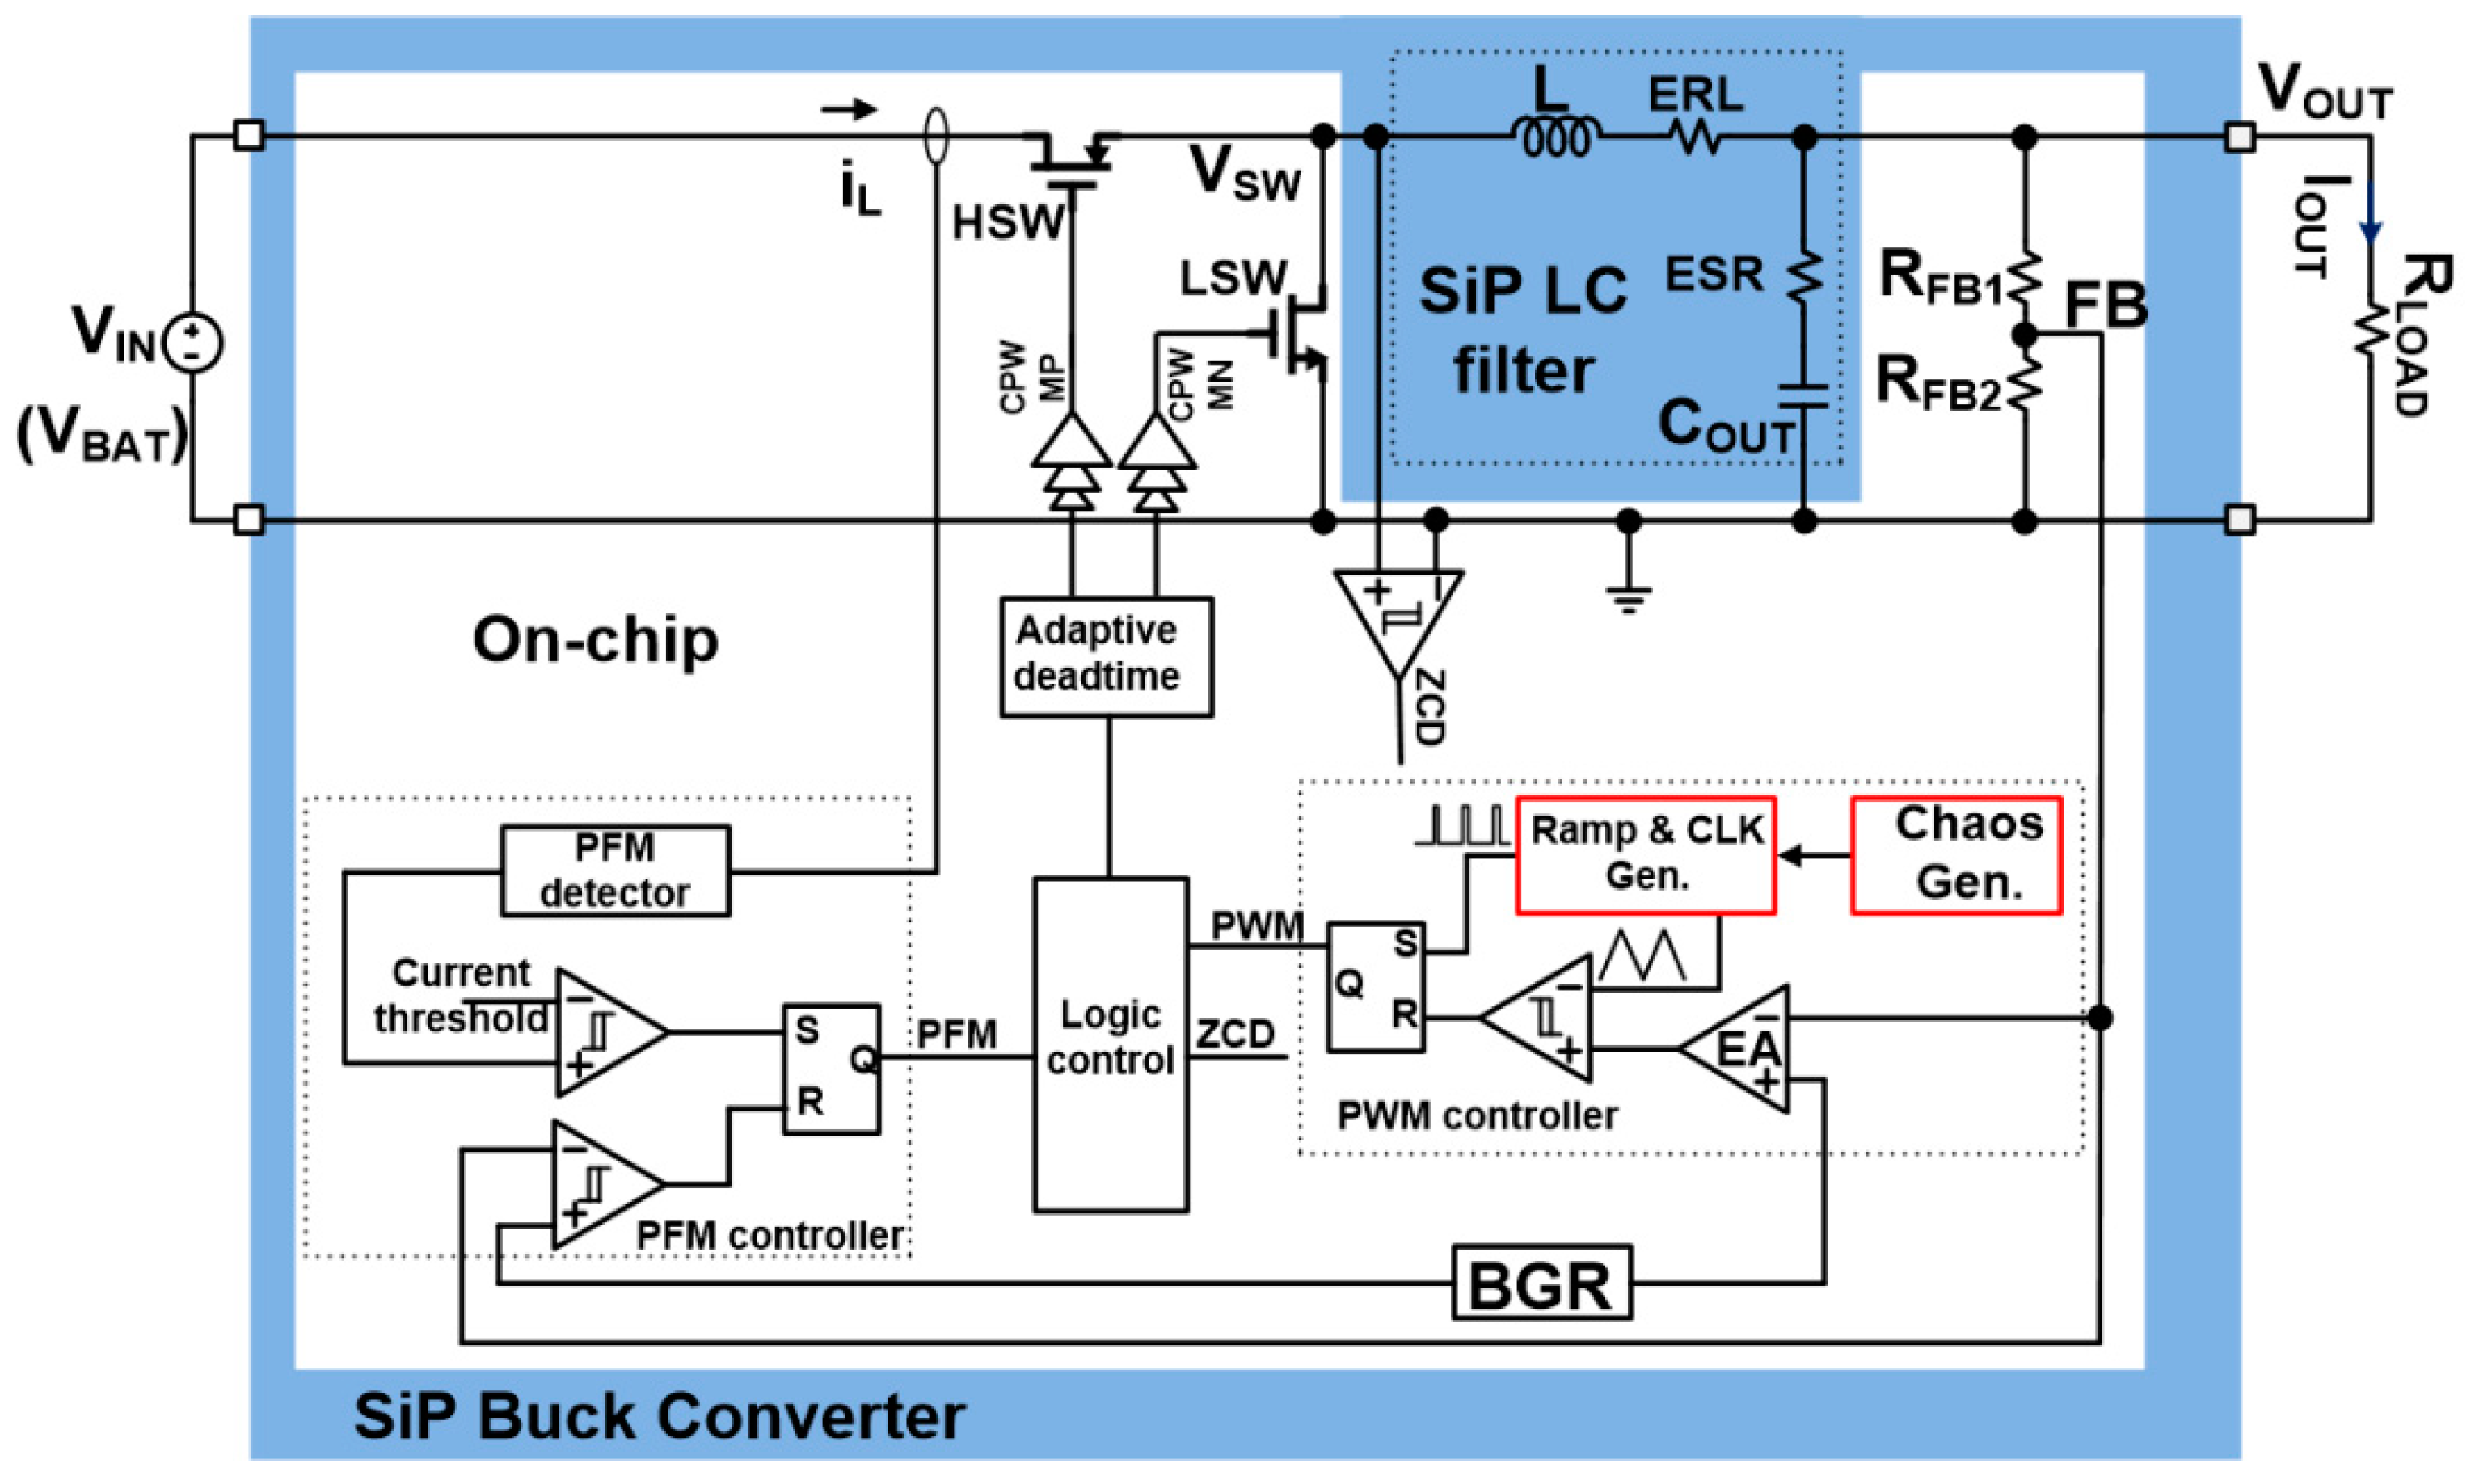 Electronics Free Full Text Active Emi Reduction Using Chaotic Cmos Inverter Parallel Lc Oscillator Oscillatorcircuit Signal 07 00254 G001